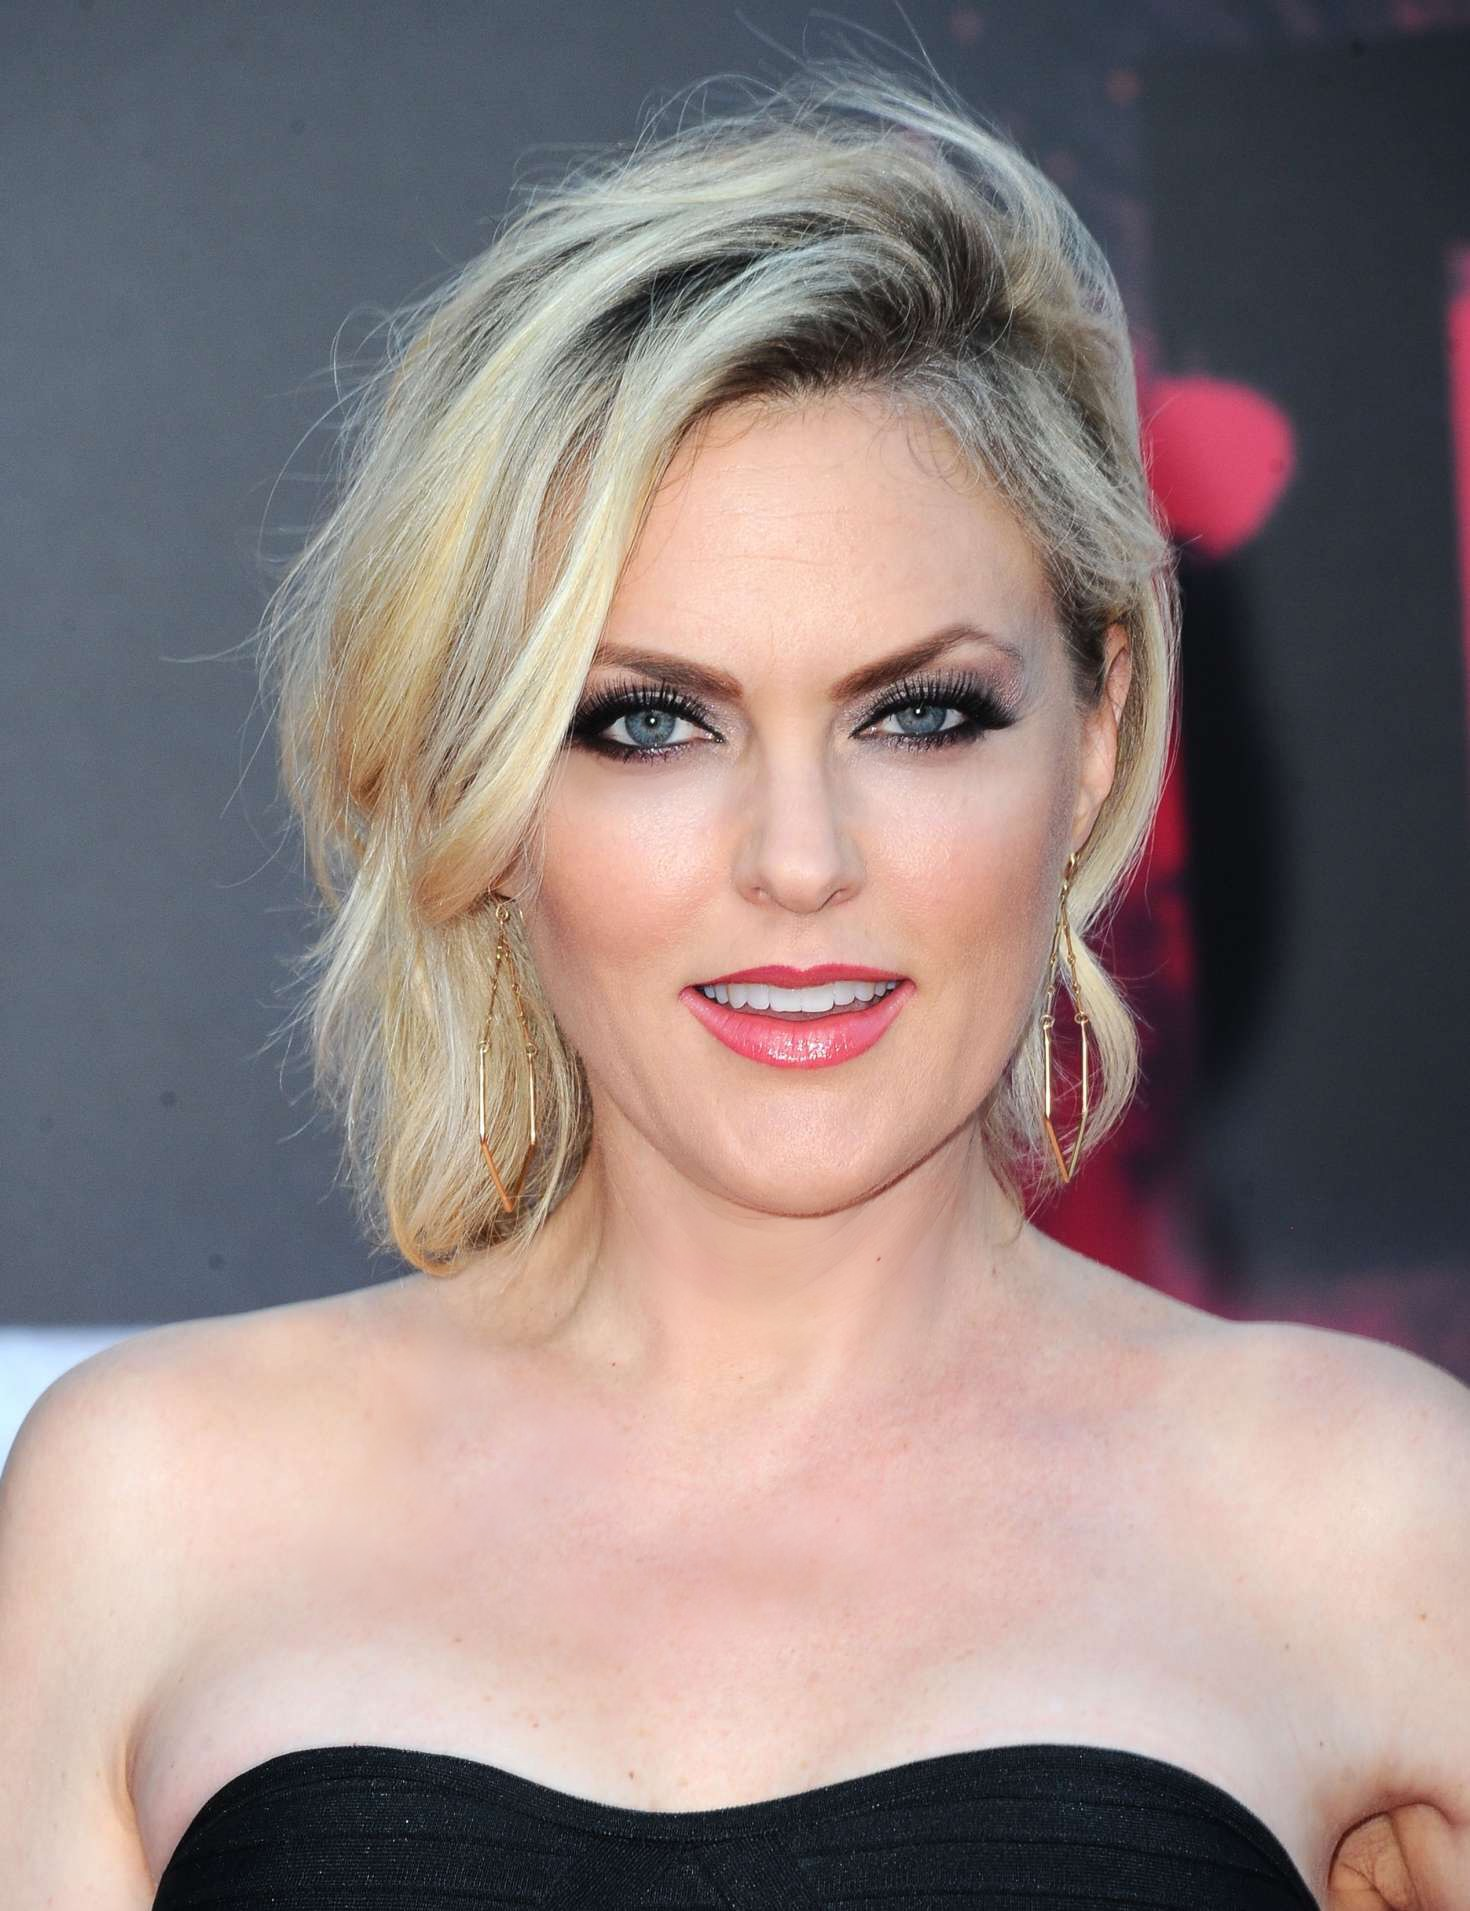 How tall is Elaine Hendrix?